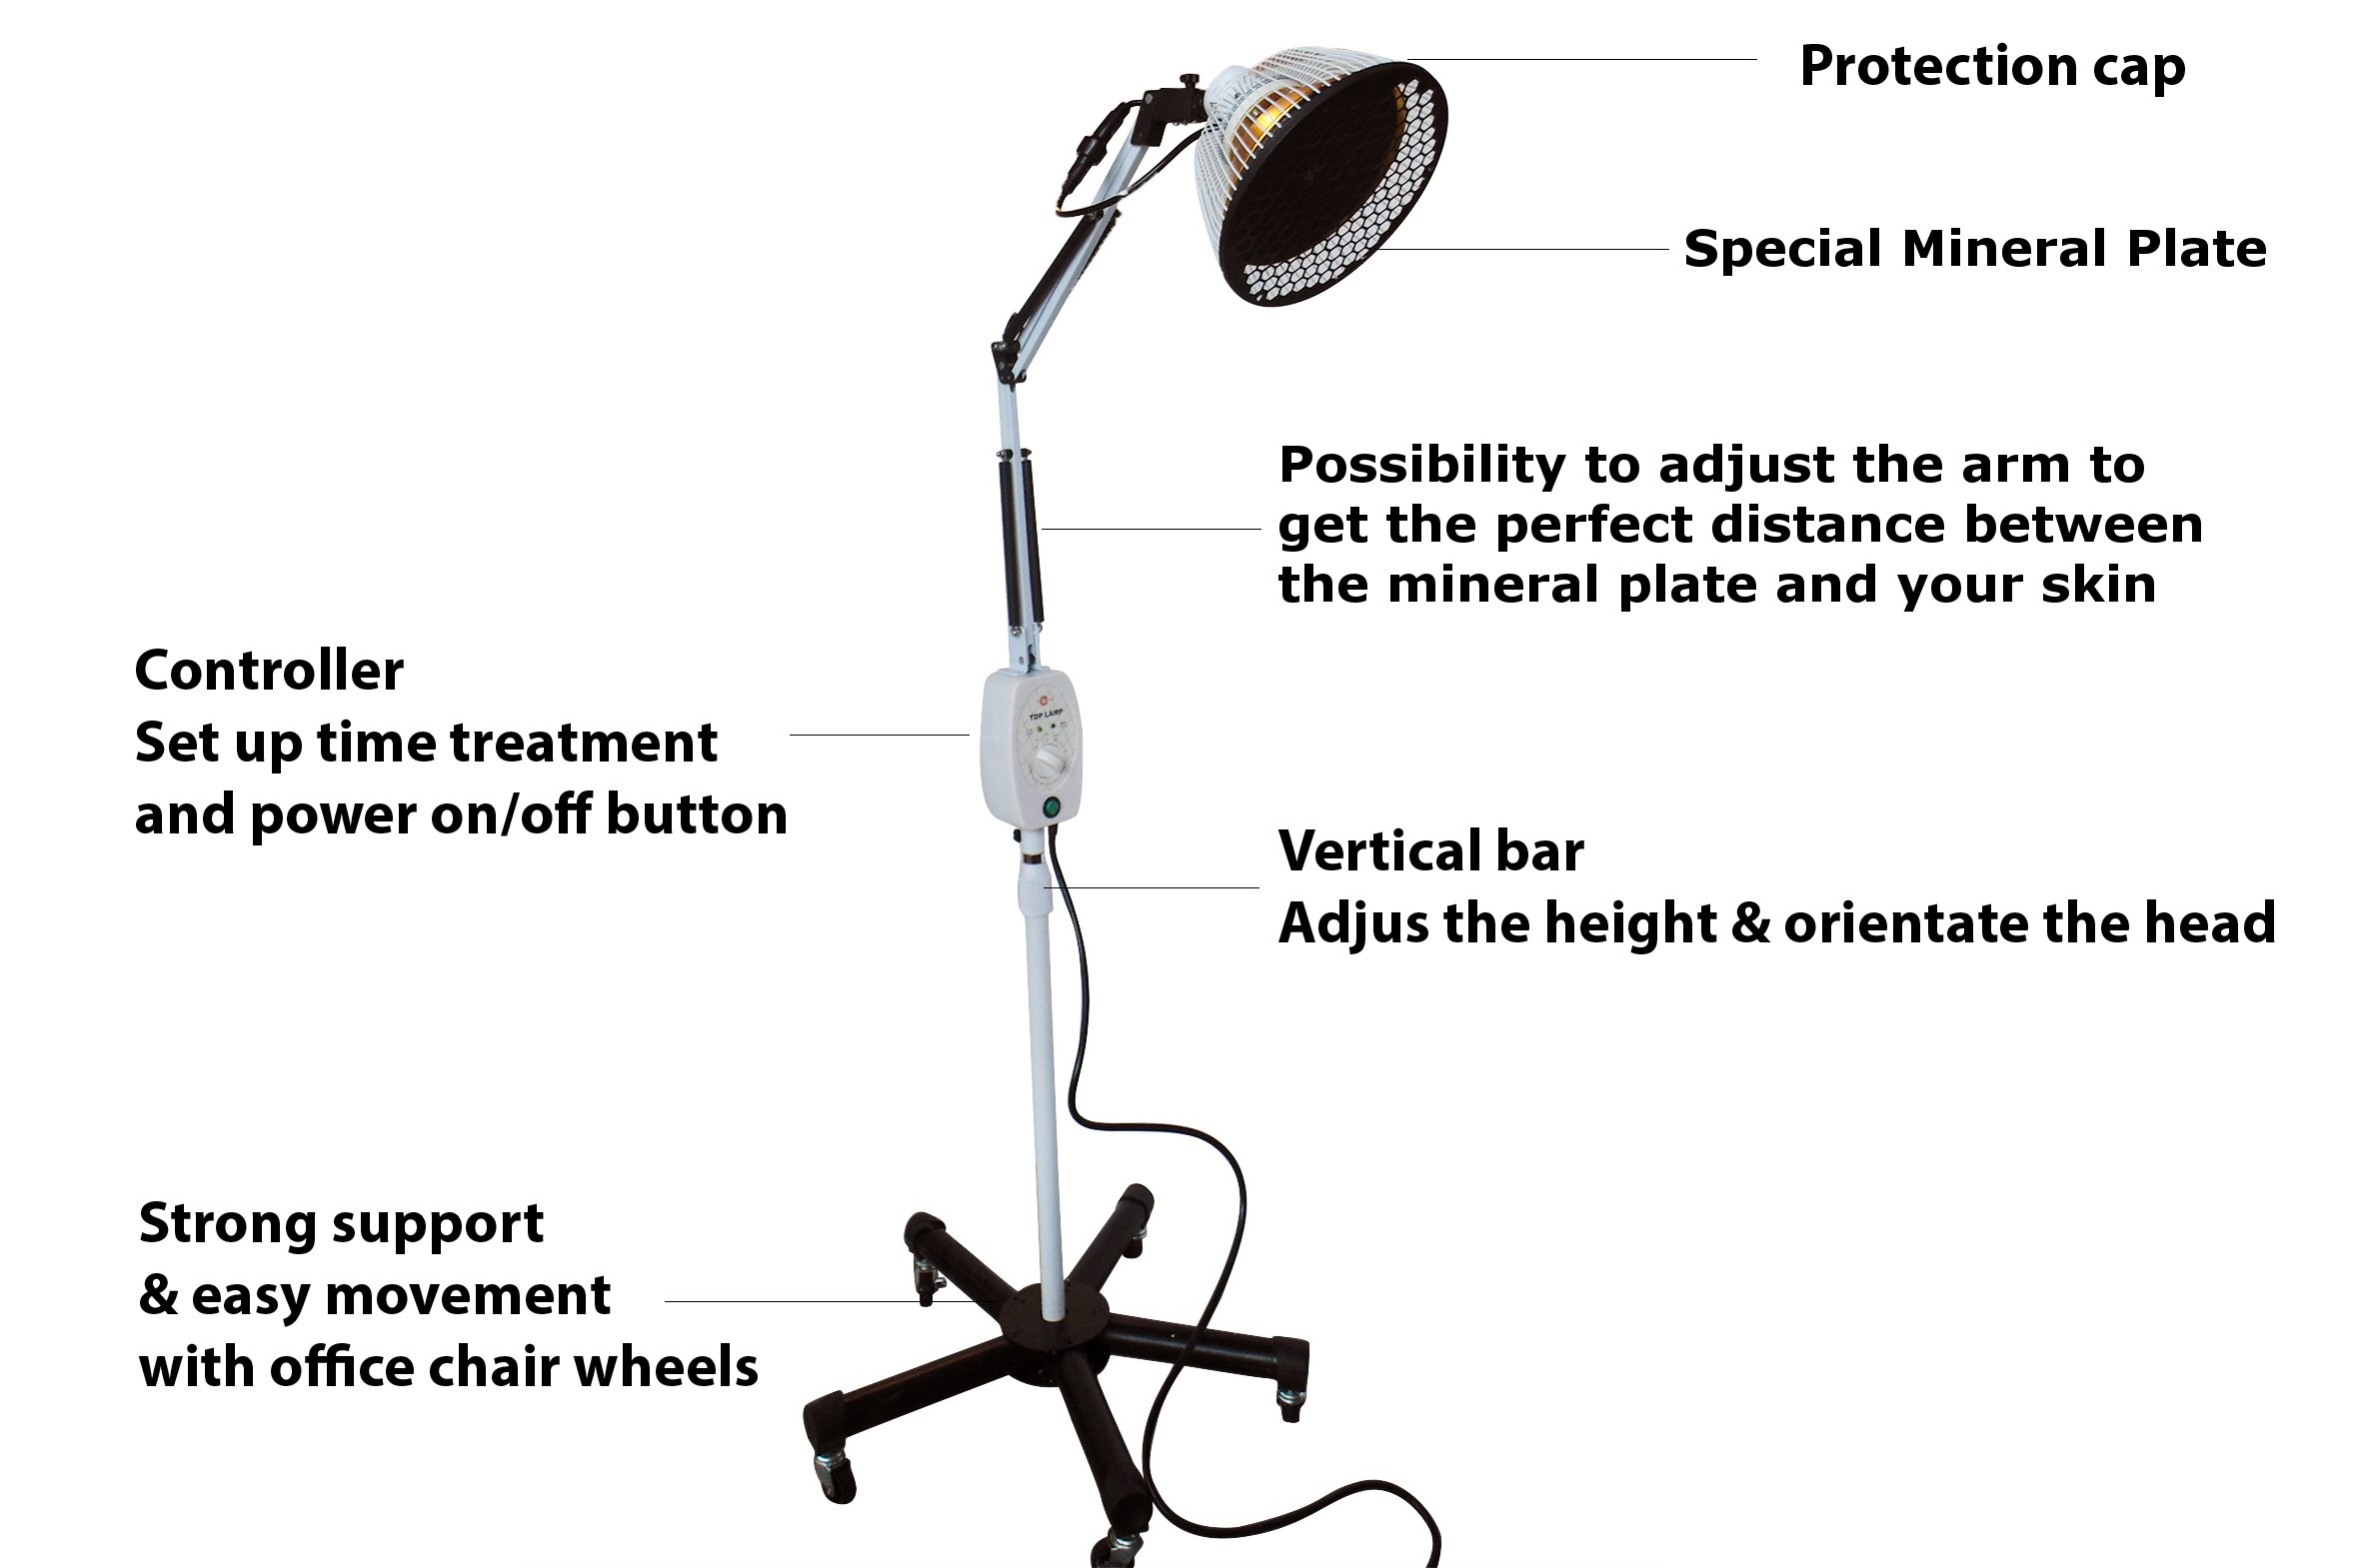 New TDP Lamp by VITA ACTIVATE + Genuine Large Mineral Plate, Detachable Head Far Infrared Natural Heat Therapy Great for Arthritis, Joint, Muscle, Tendon Pain Relief Recovery